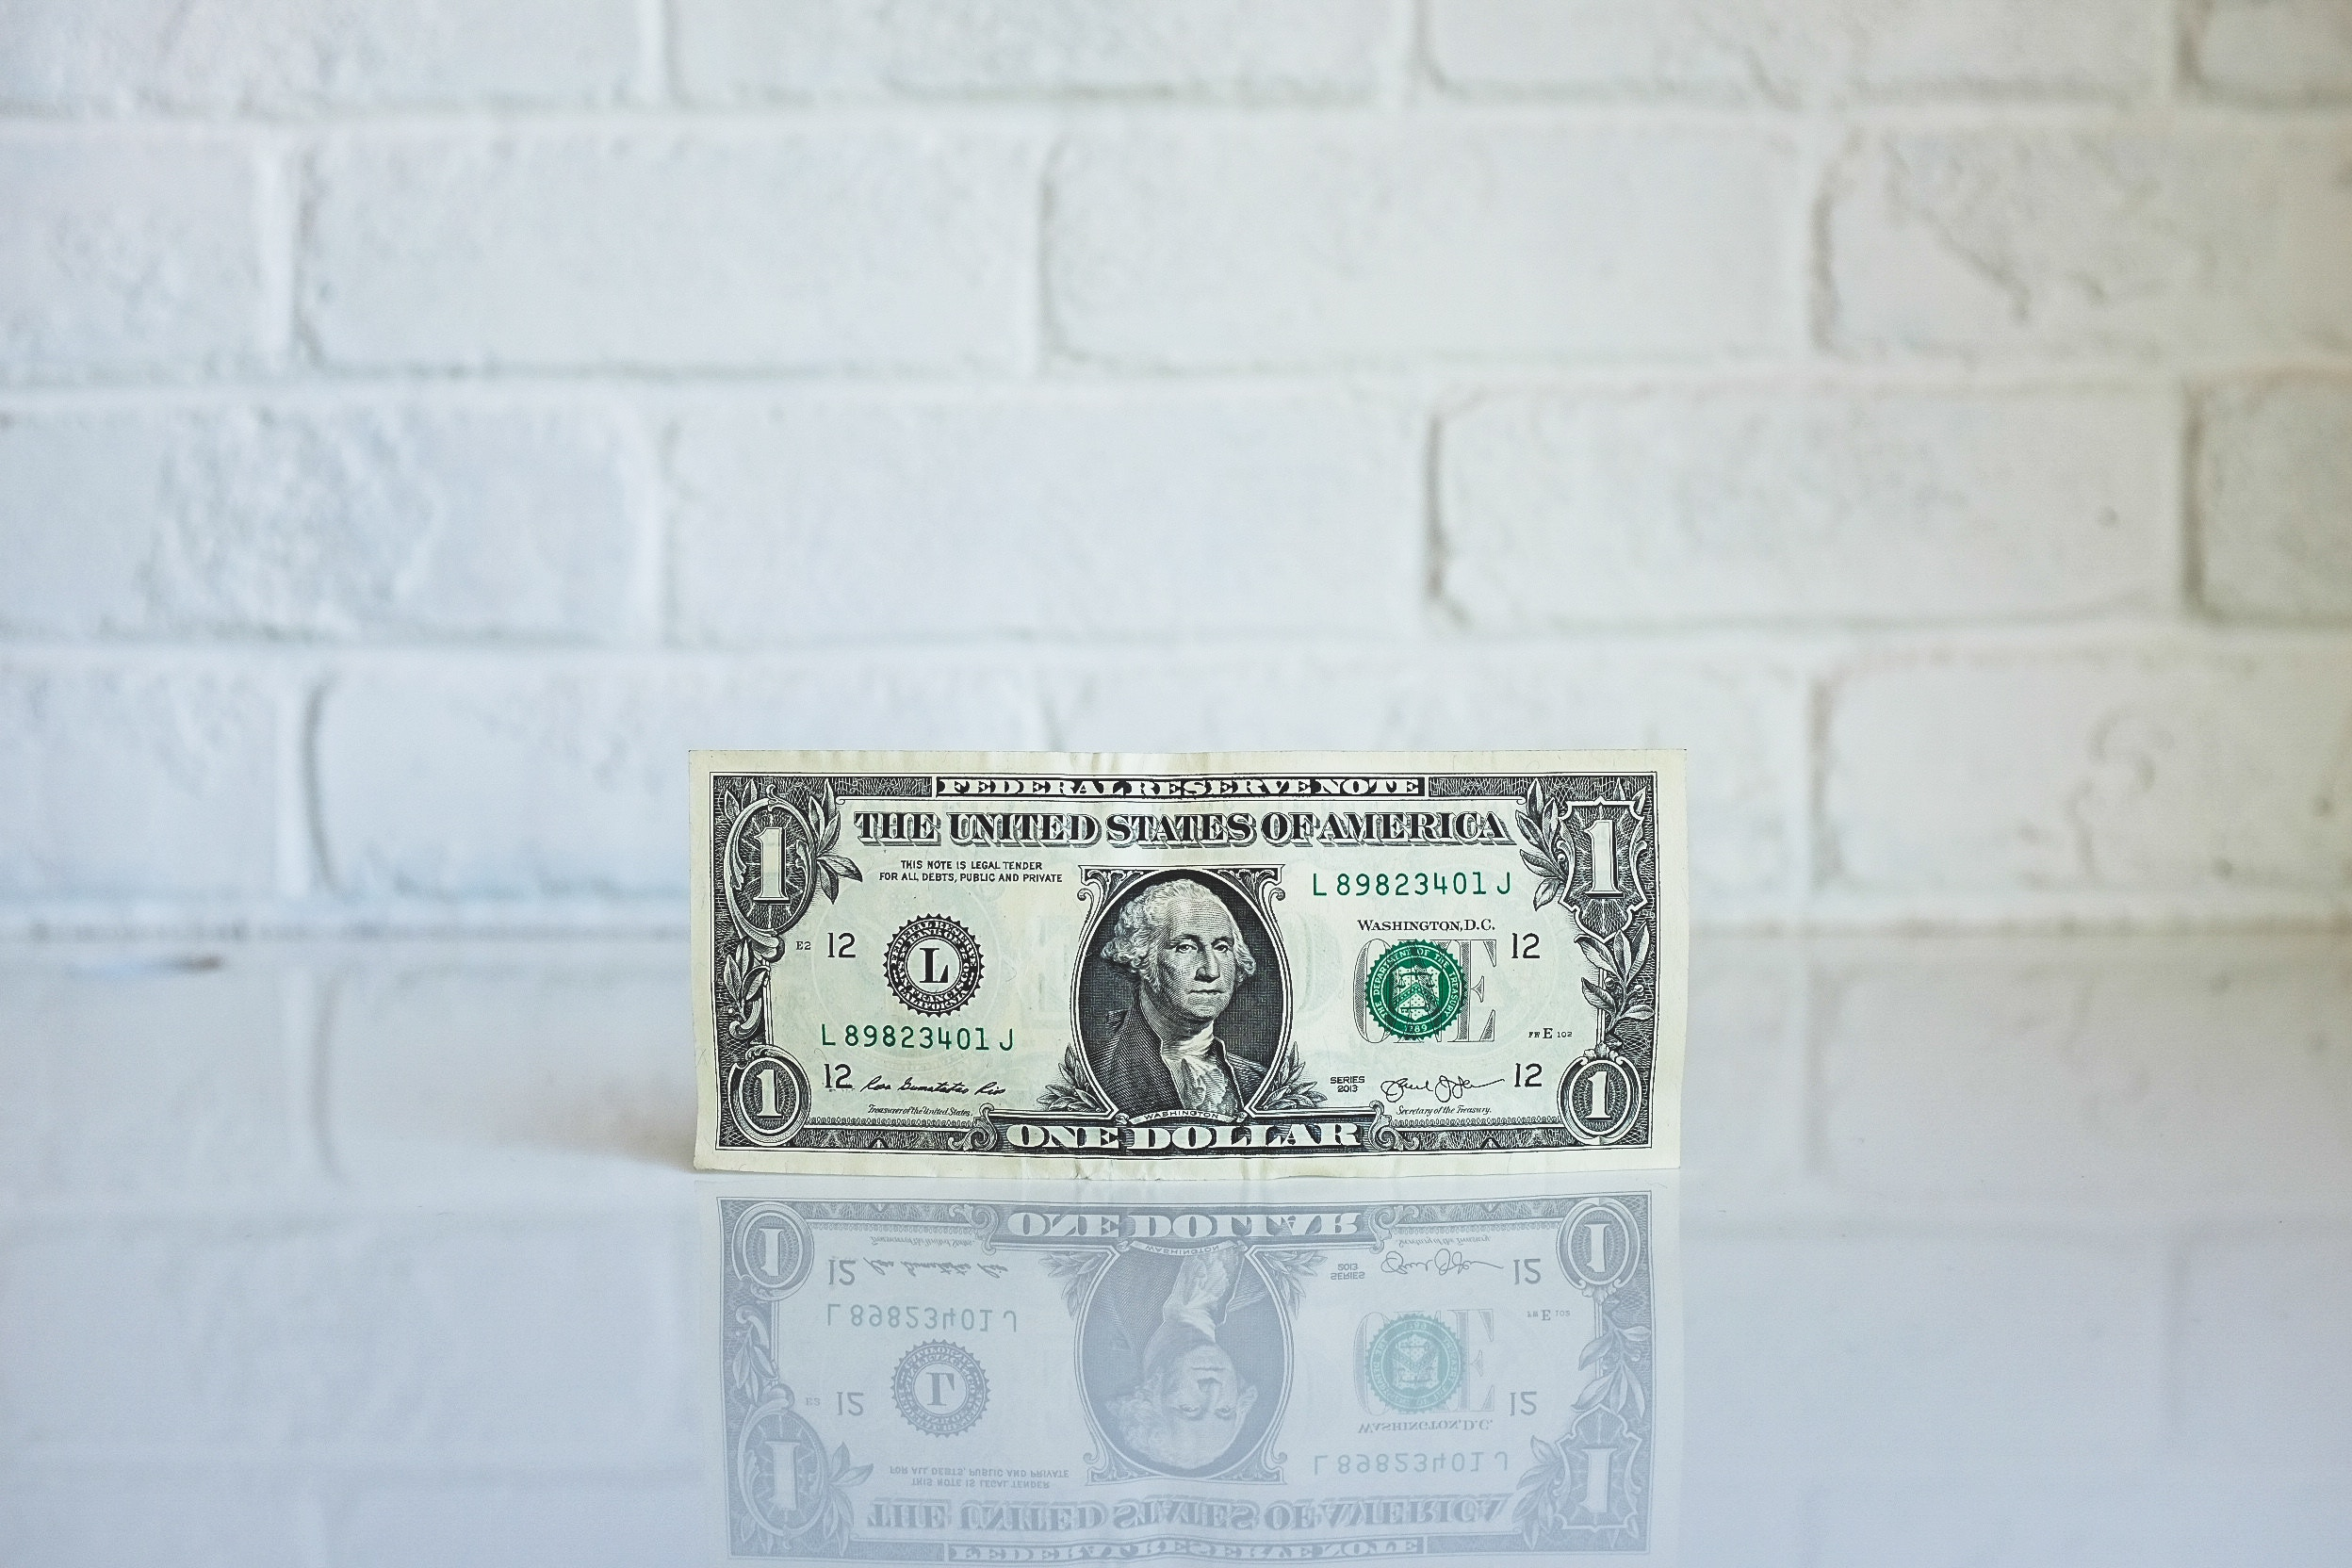 Dollar Bill - How the Fed's Interest Rate Changes Affect You - The Morty Blog